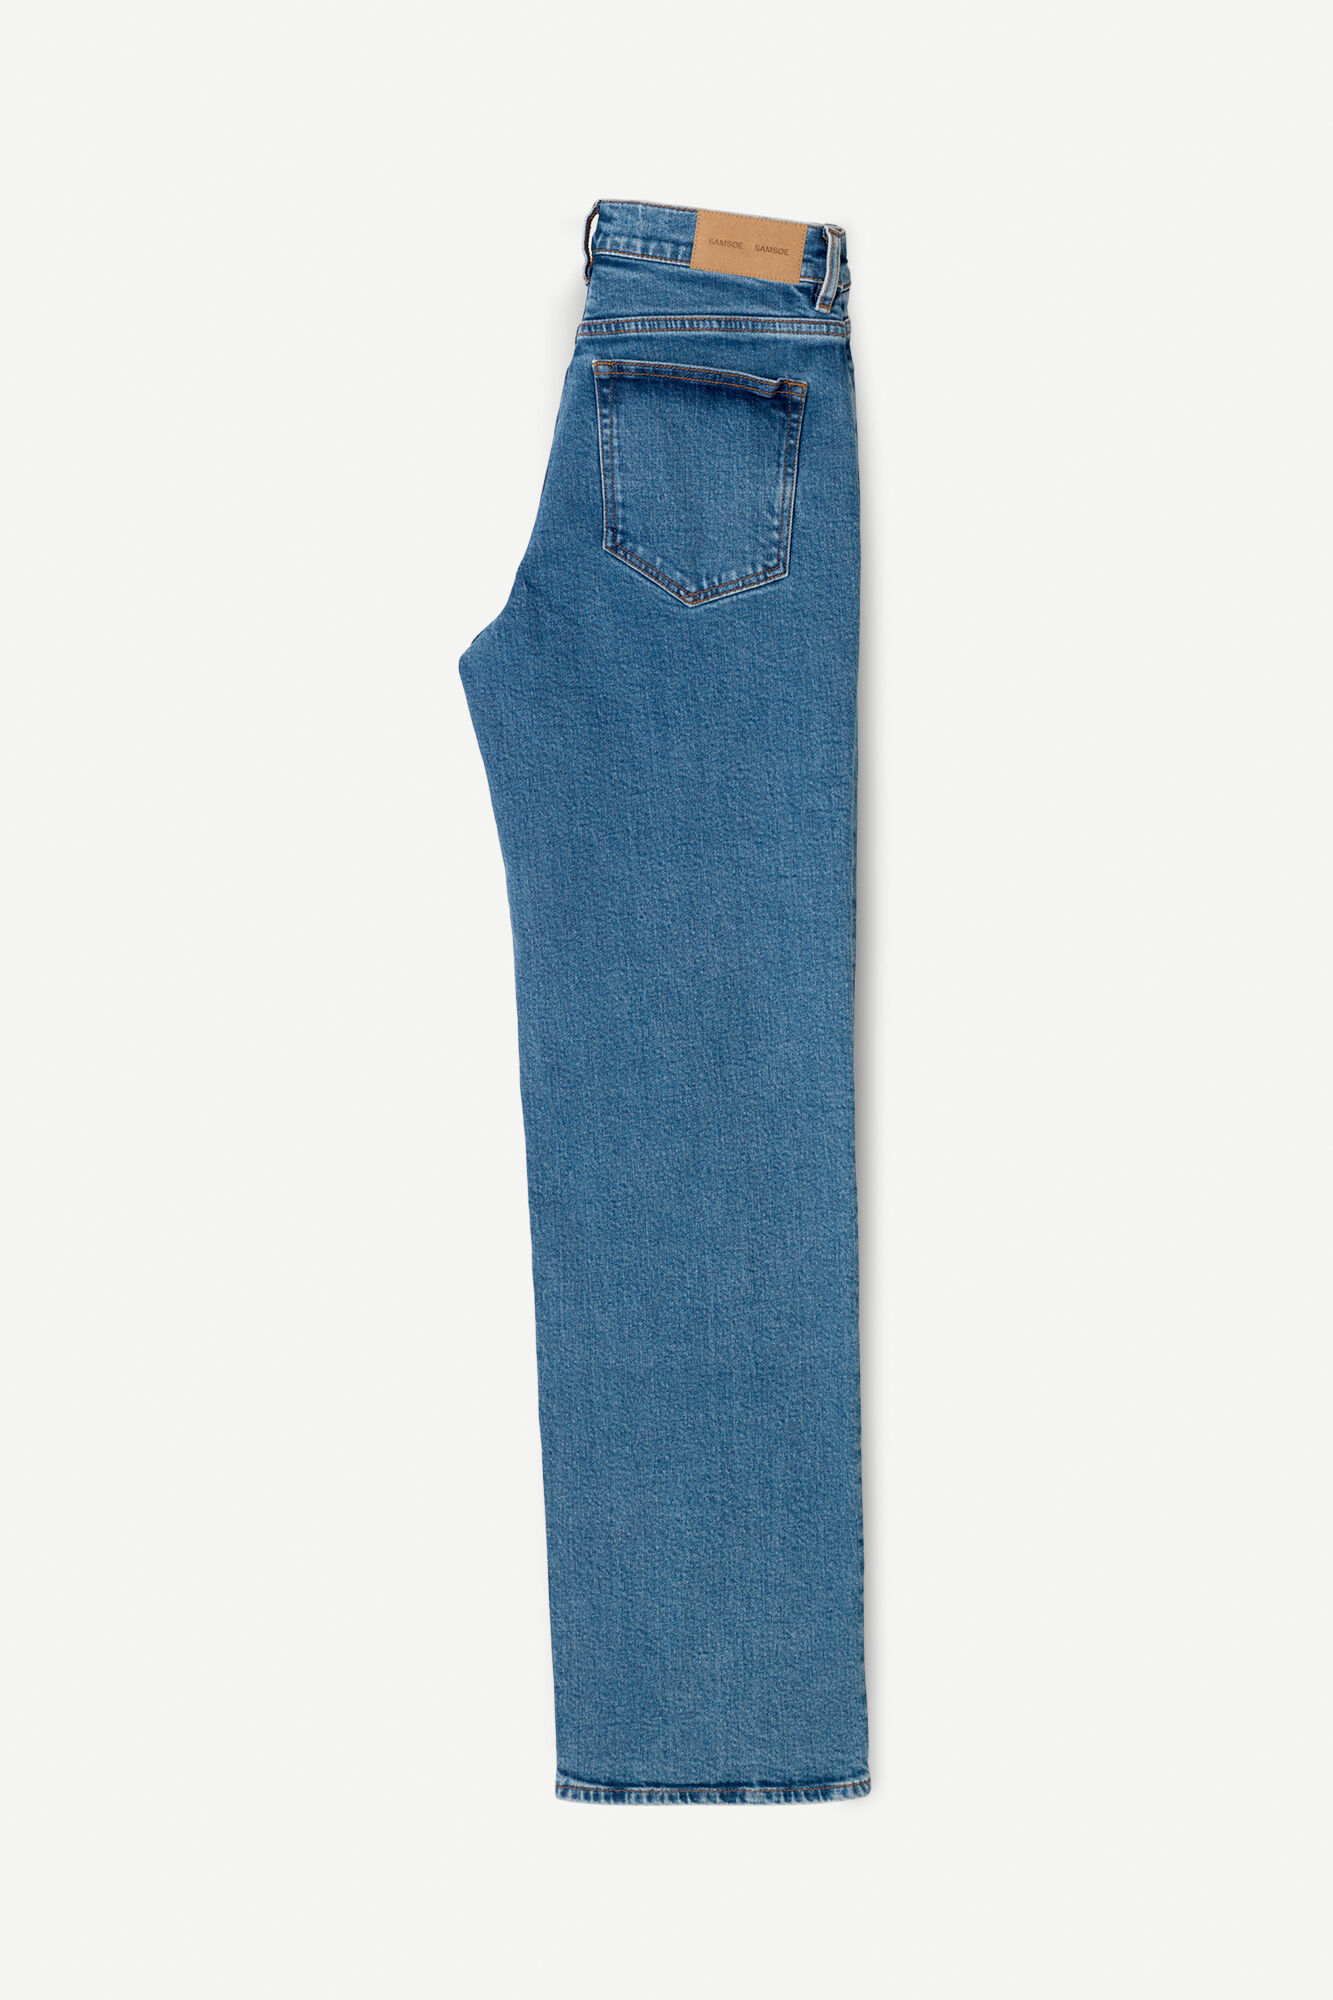 Riley jeans 11354, LIGHT OZONE MARBLE